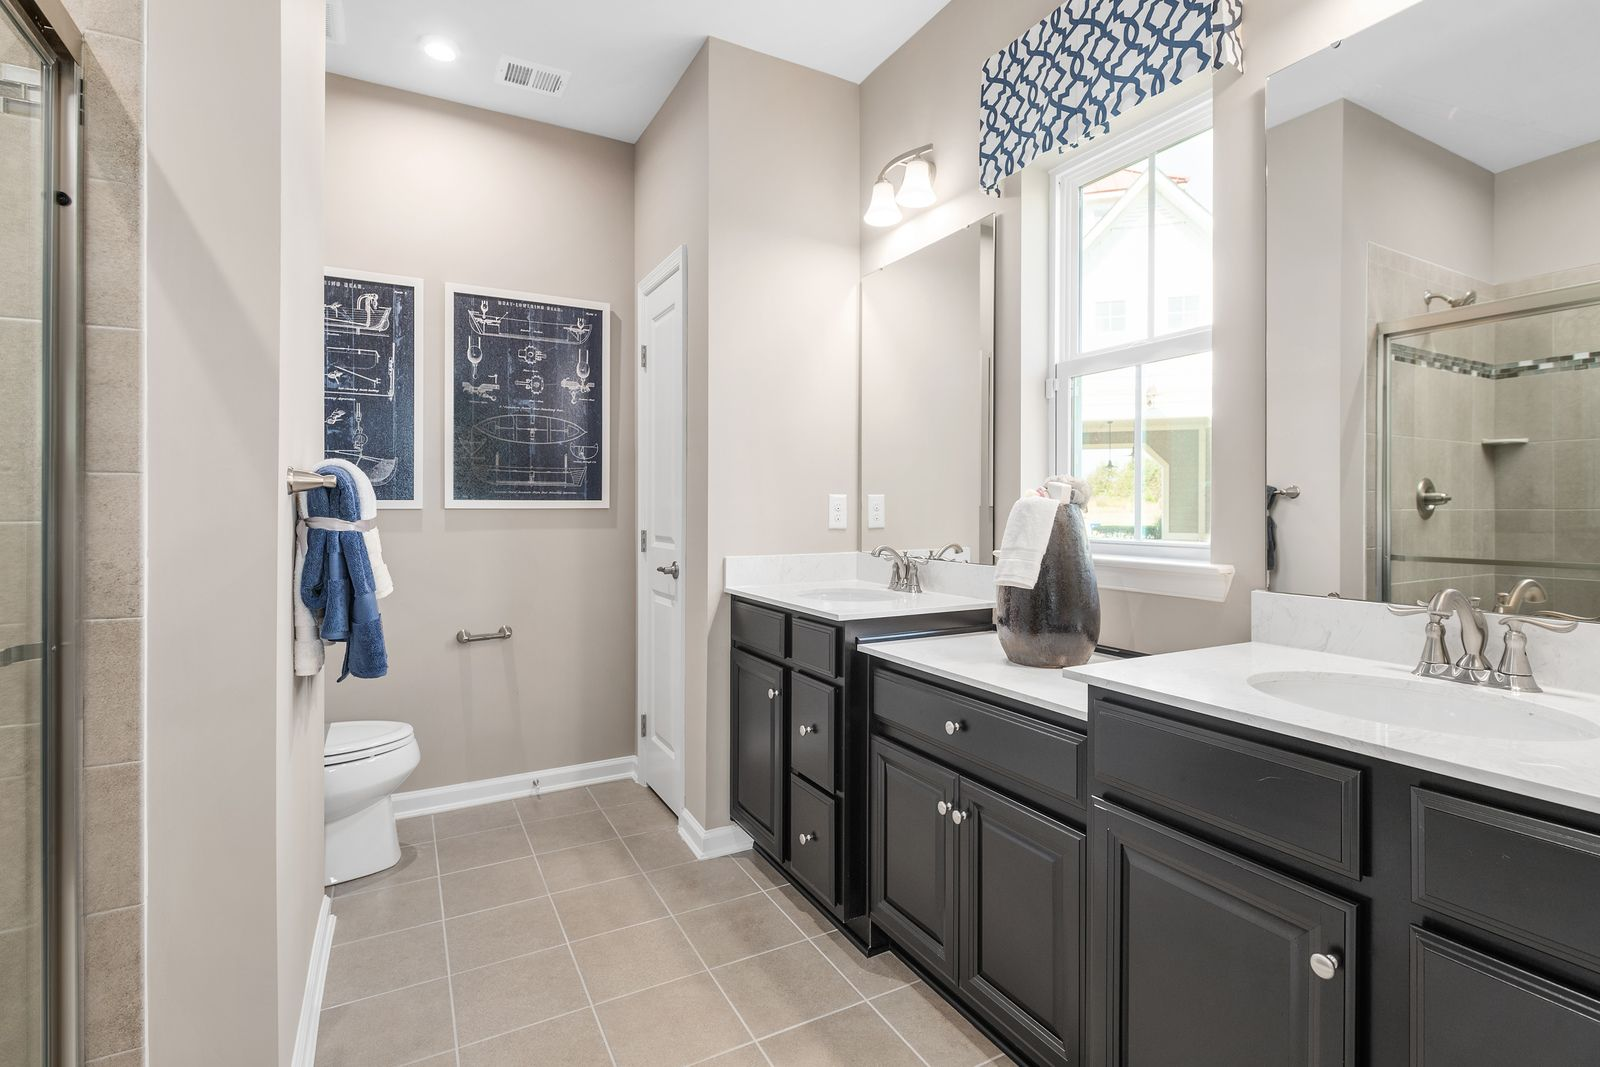 Bathroom featured in the Palladio Ranch with Full Basement By Ryan Homes in Indianapolis, IN